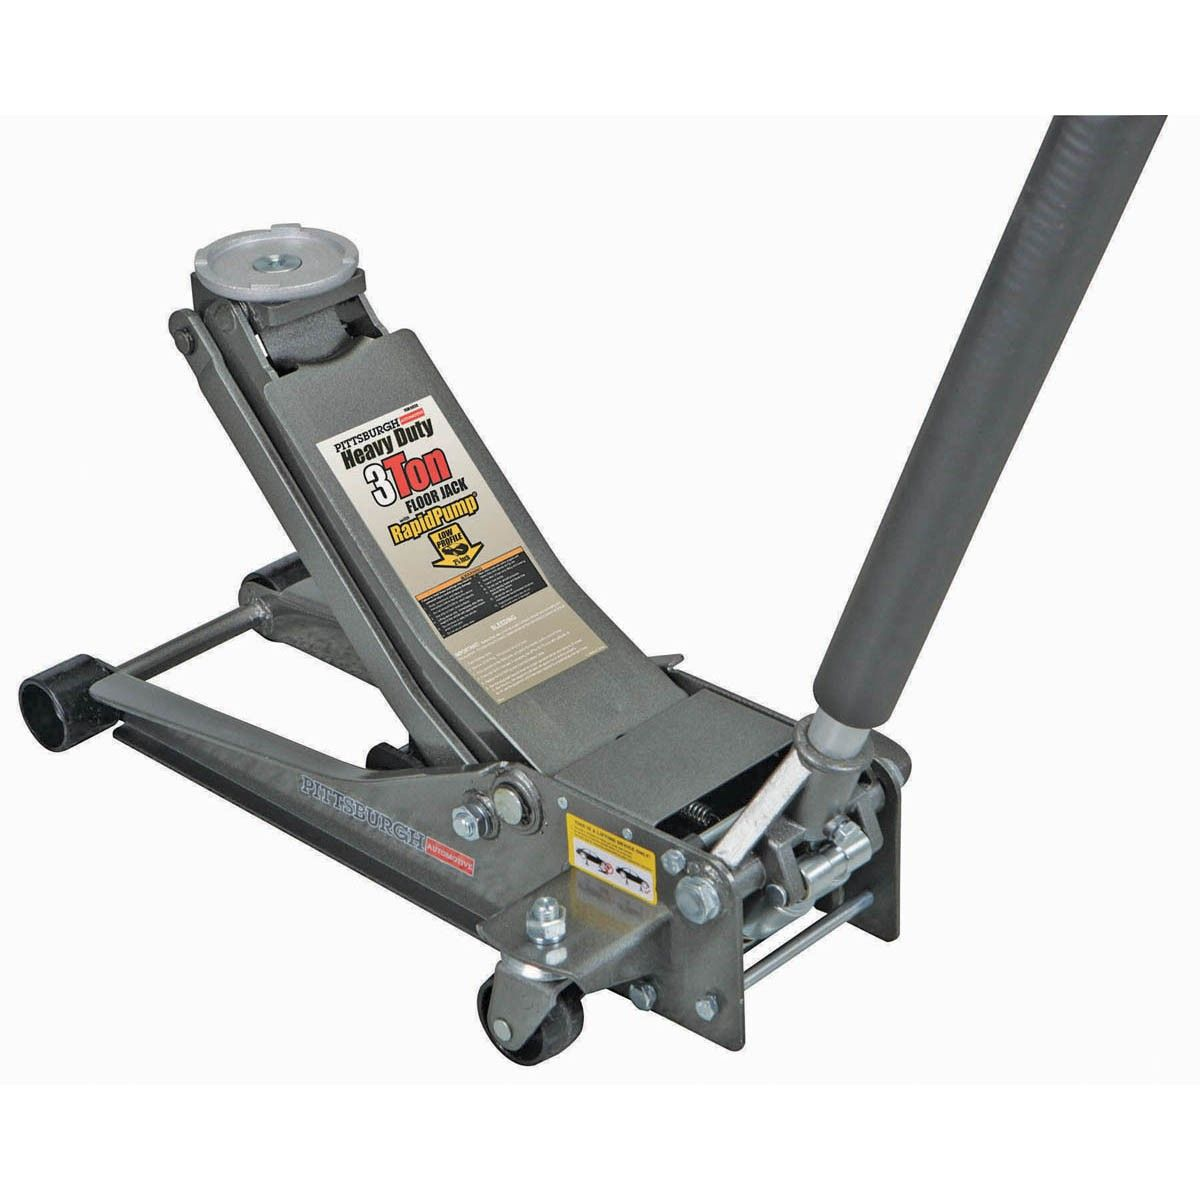 Pittsburgh Automotive 61253 3 Ton Heavy Duty Floor Jack With Rapid